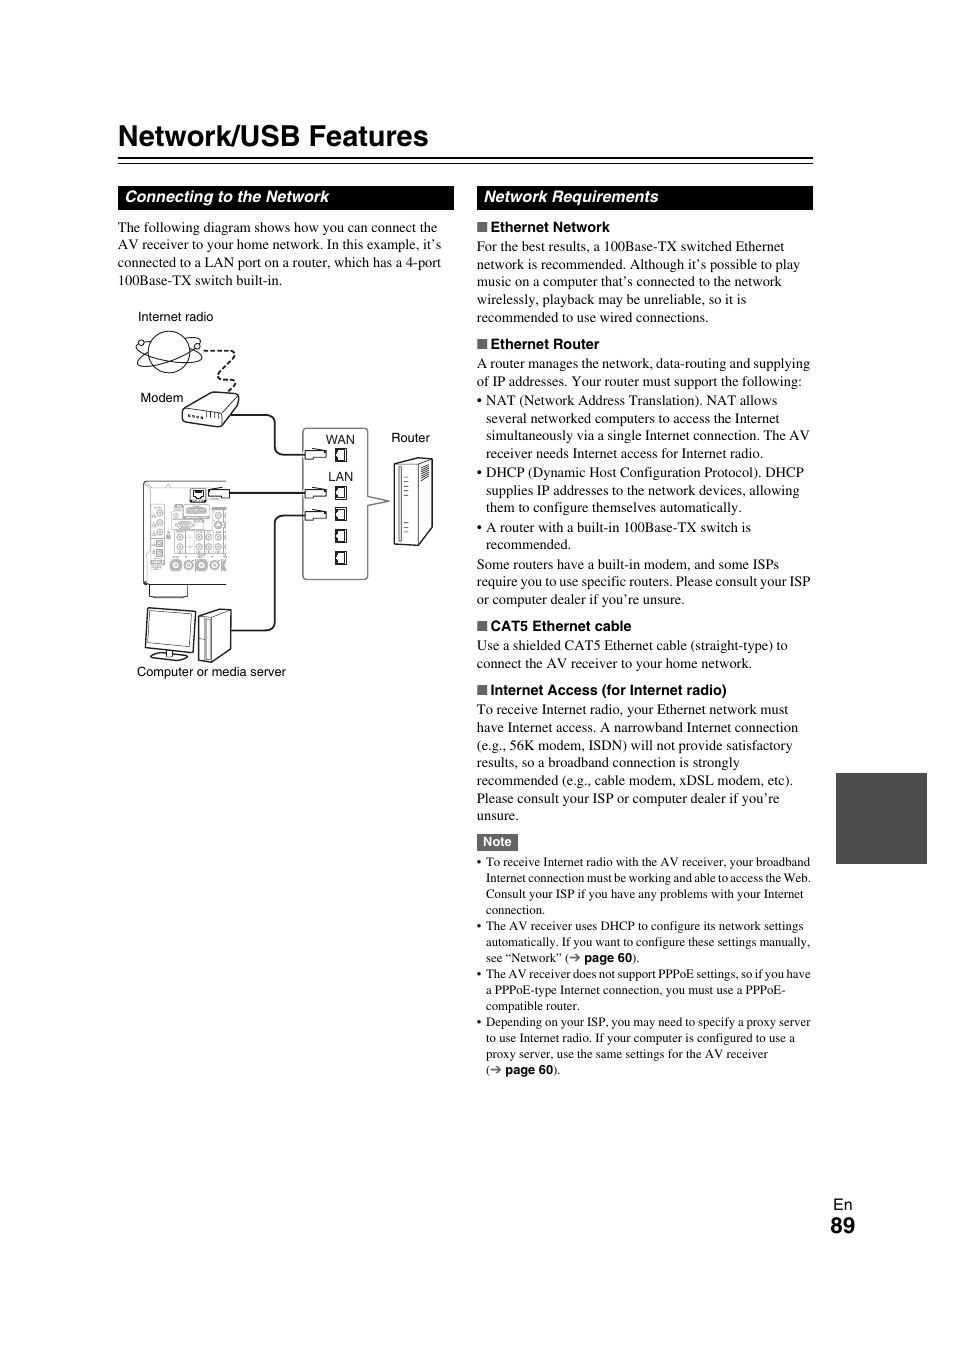 Network/usb features, Network | Onkyo TX-NR709 User Manual | Page 89